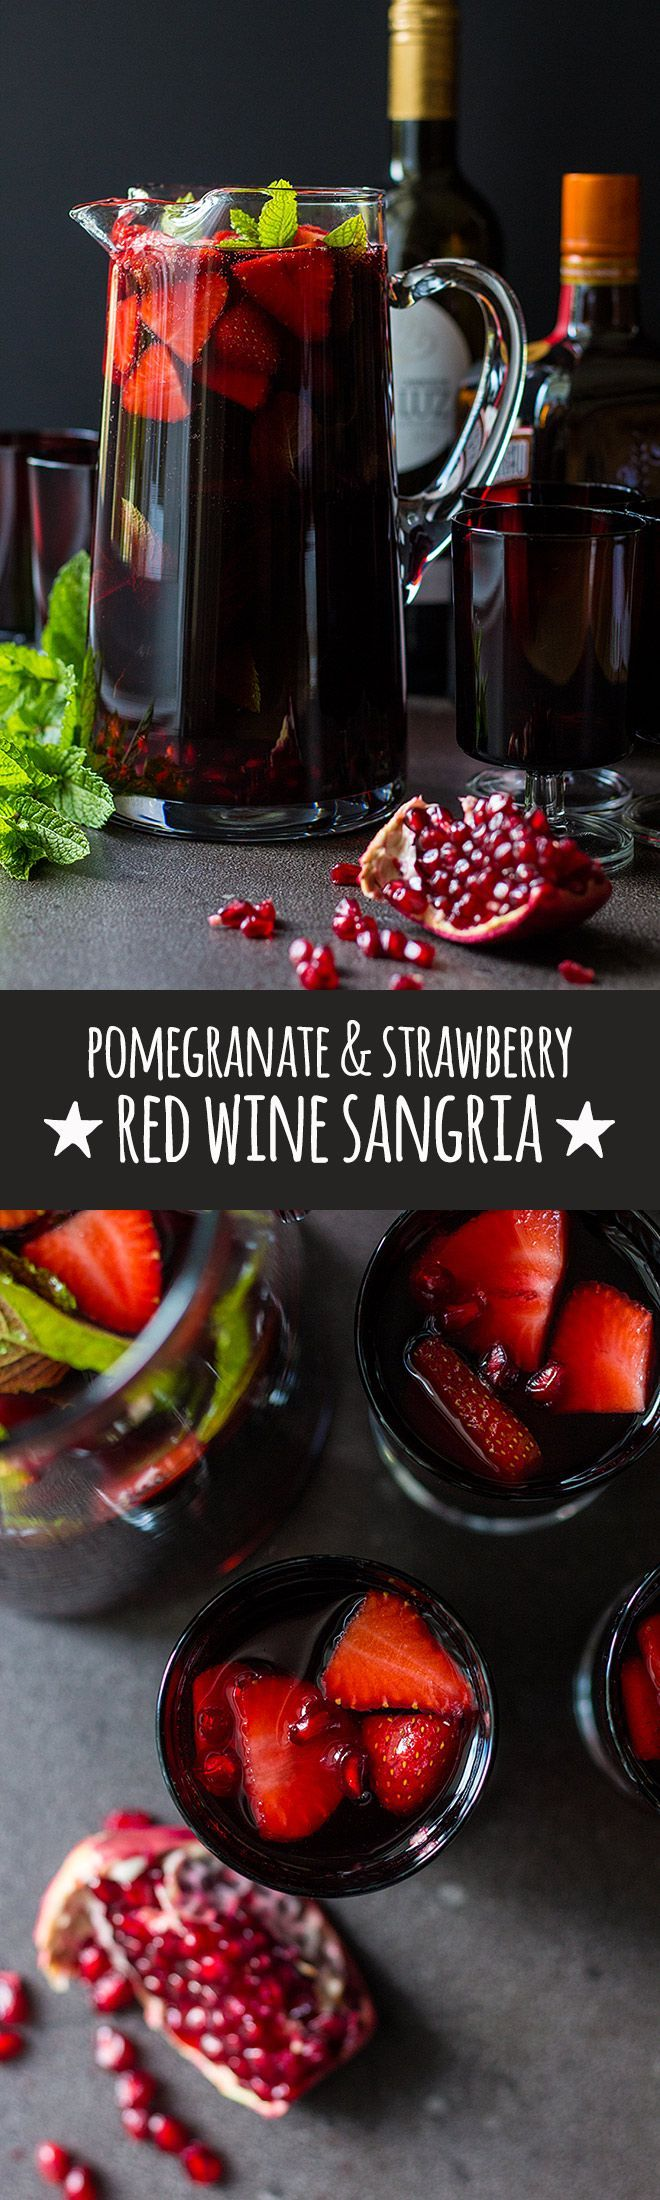 A Sweetly Refreshing Chilled Red Wine Sangria With Pomegranate Sliced Strawberries And Lots Of Fresh Mint Via Red Wine Sangria Wine Recipes Chill Red Wine